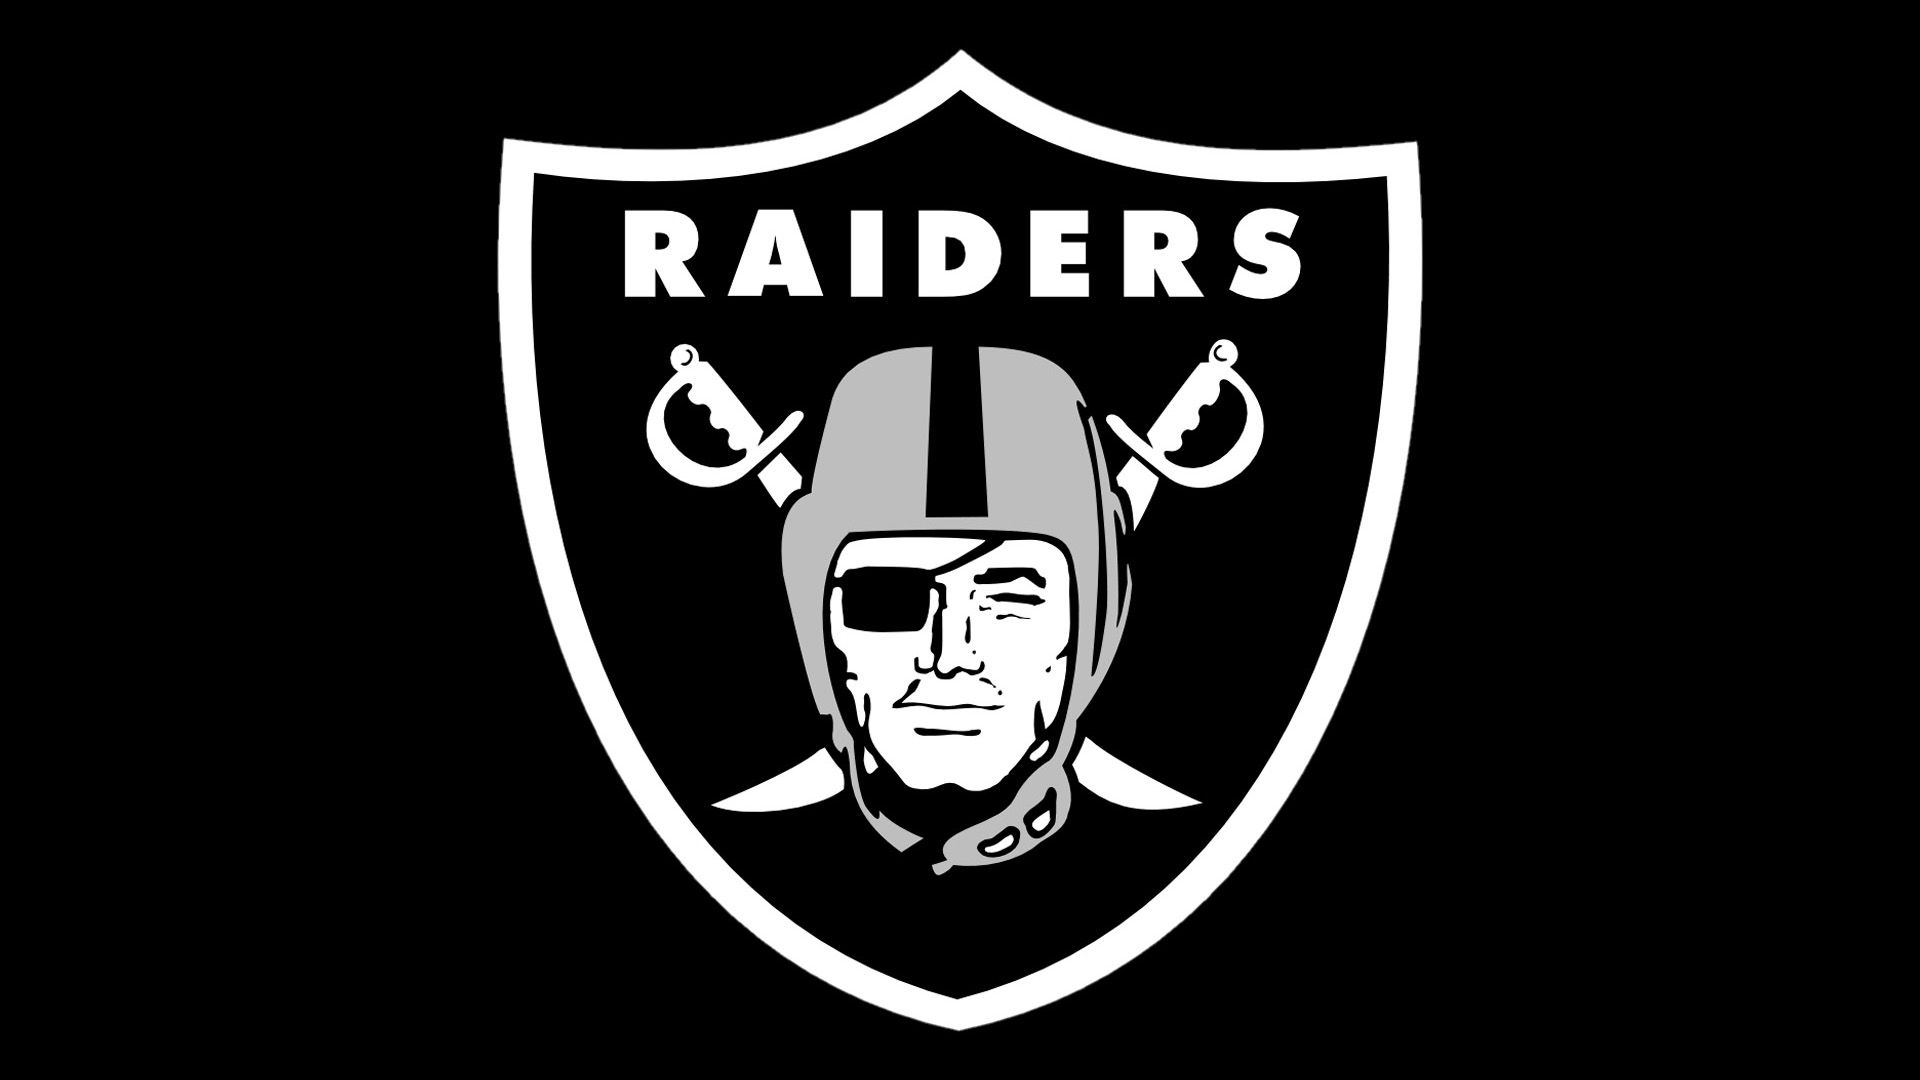 Oakland Raiders Hd Wallpaper 1080p Lugares Para Visitar